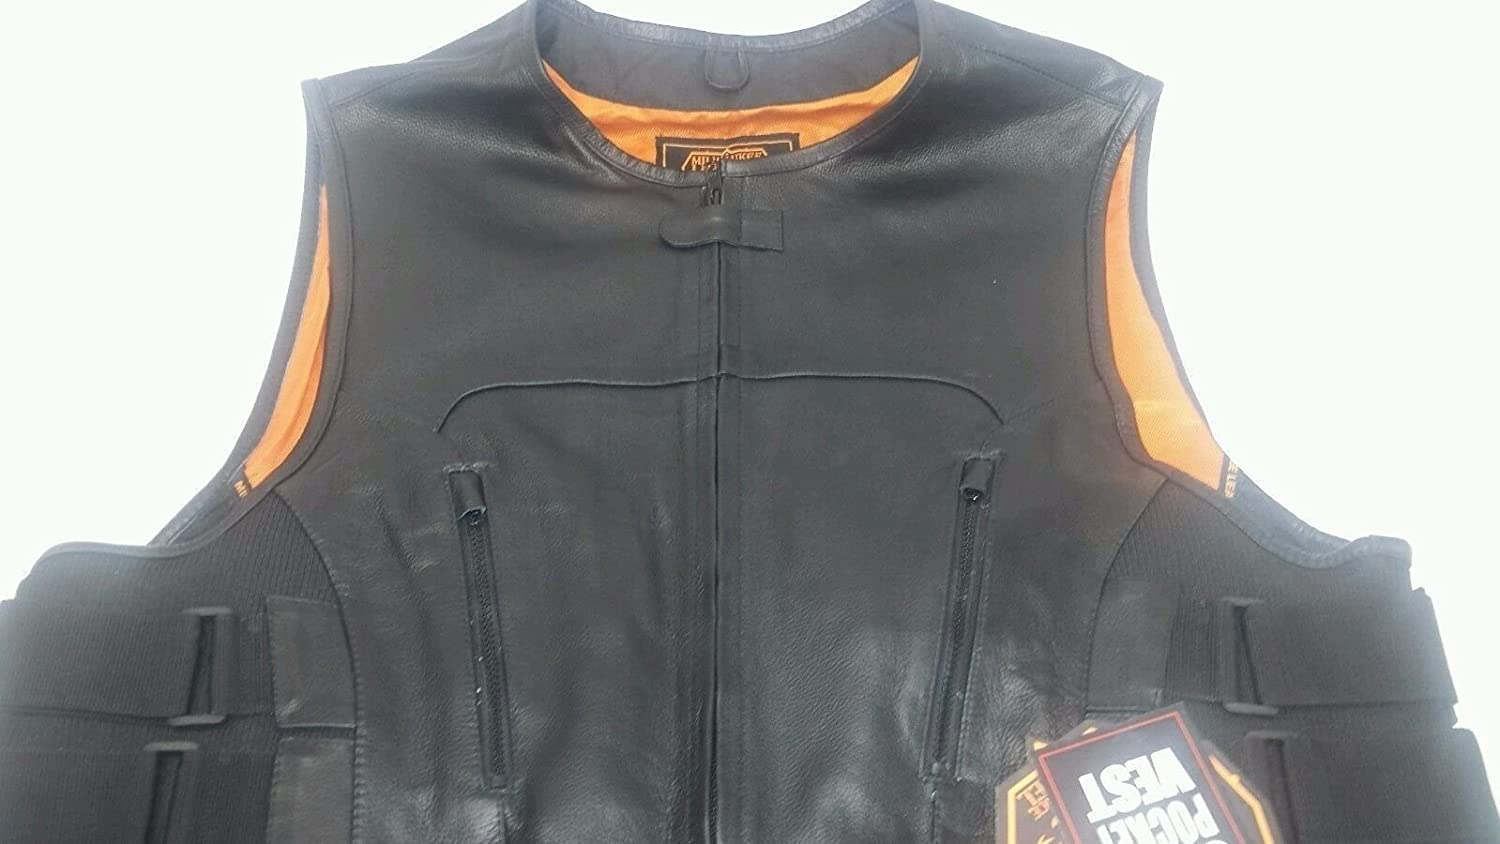 8XL Regular Milwaukee MENS MOTORCYCLE SWAT STYLE VEST UPDATED TACTICAL LEATHER VEST BUTTER SOFT NEW